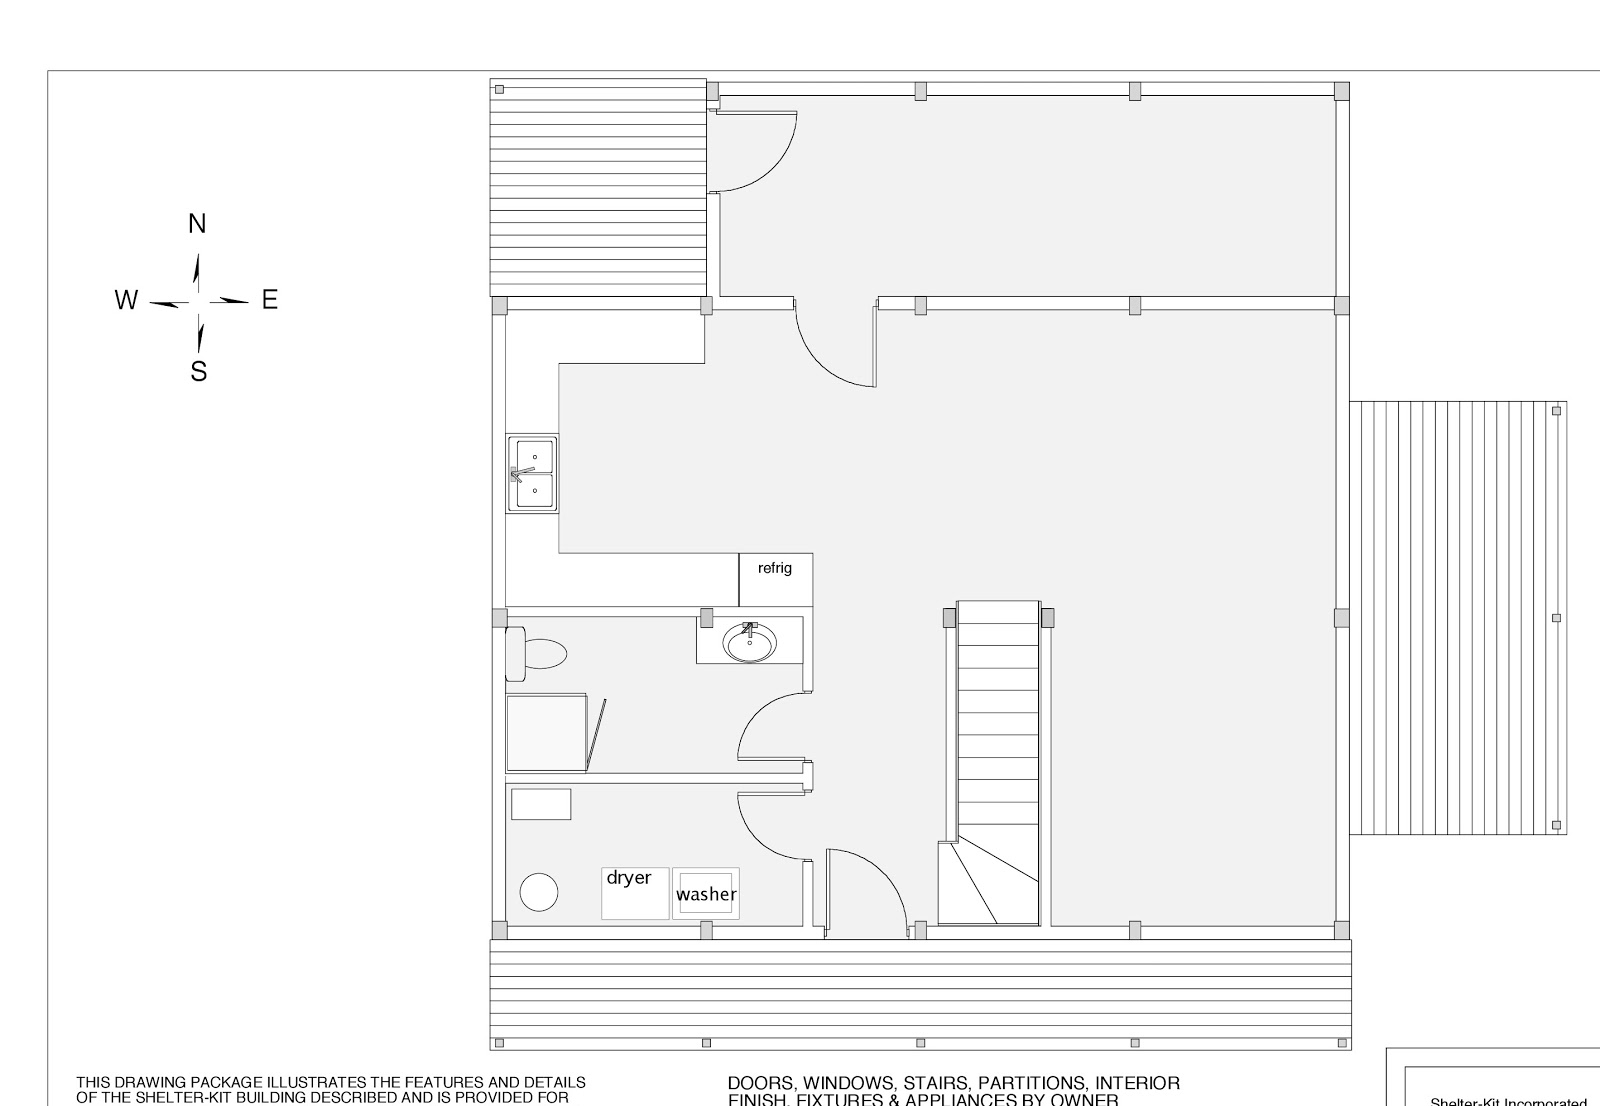 Green in greenville preliminary drawings of the house for Envelope house plans